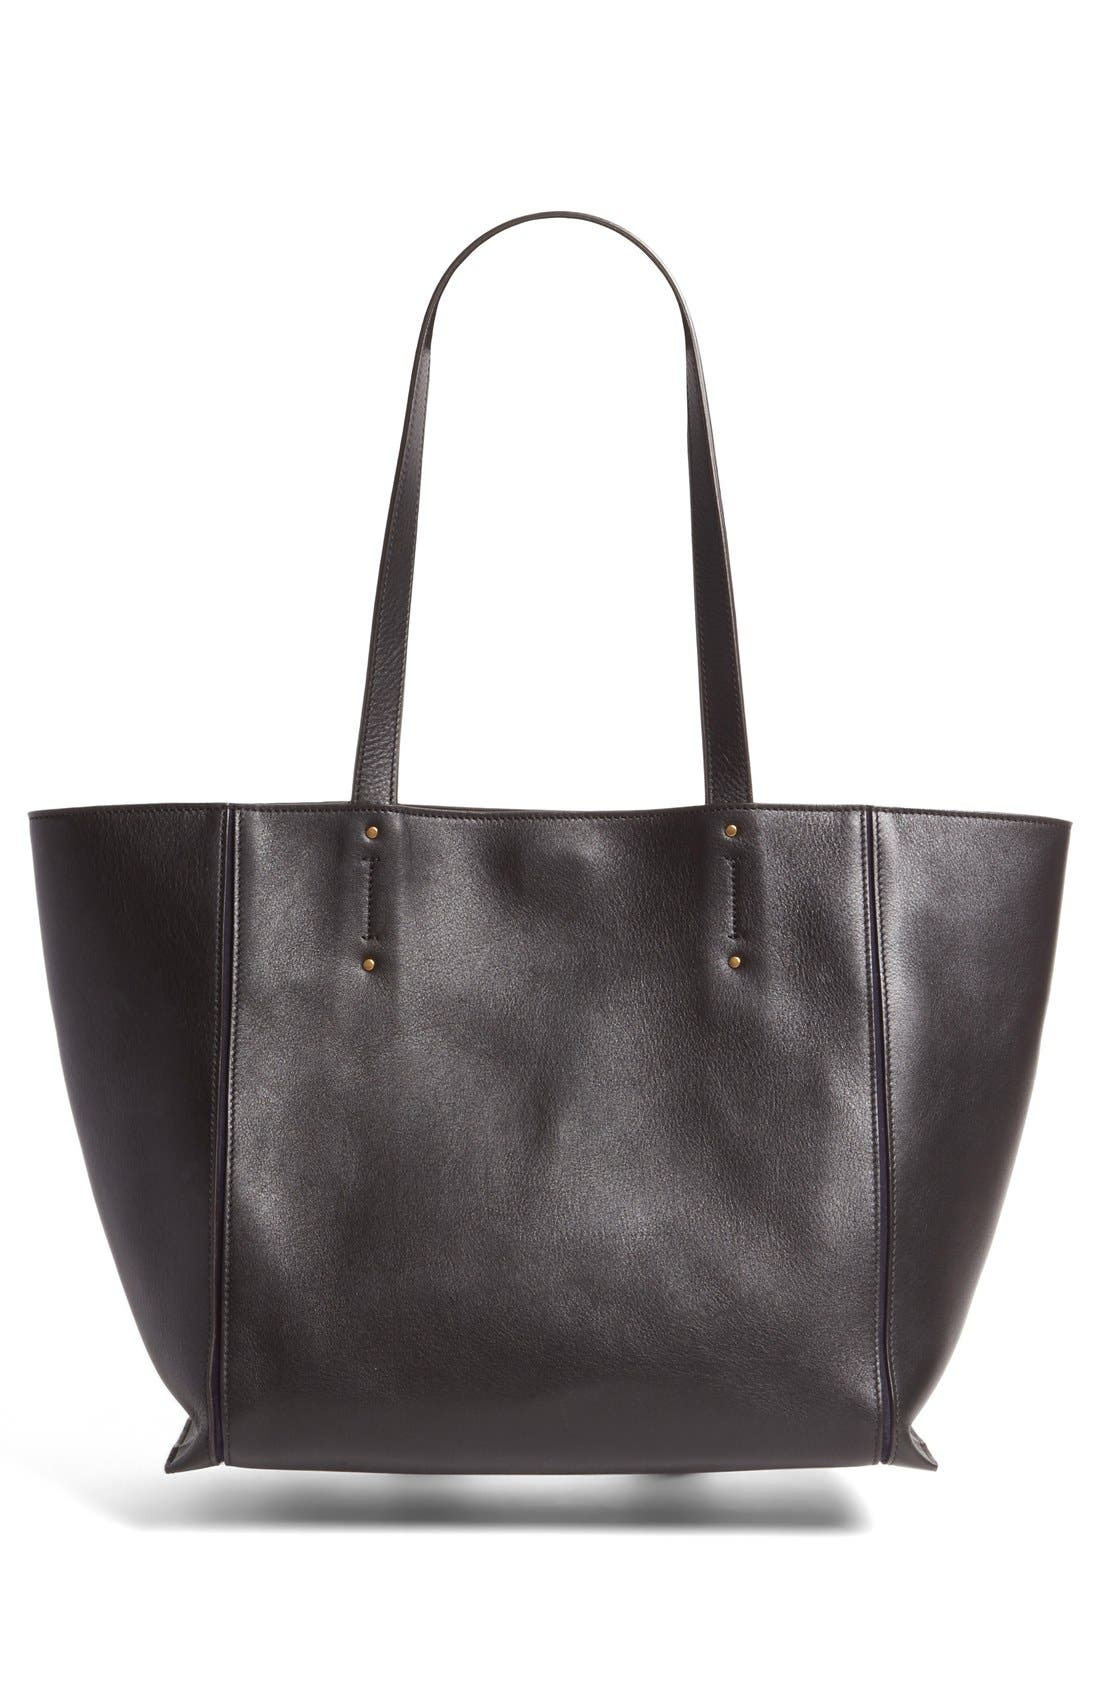 Medium Milo Calfskin Leather Tote,                             Alternate thumbnail 3, color,                             BLACK